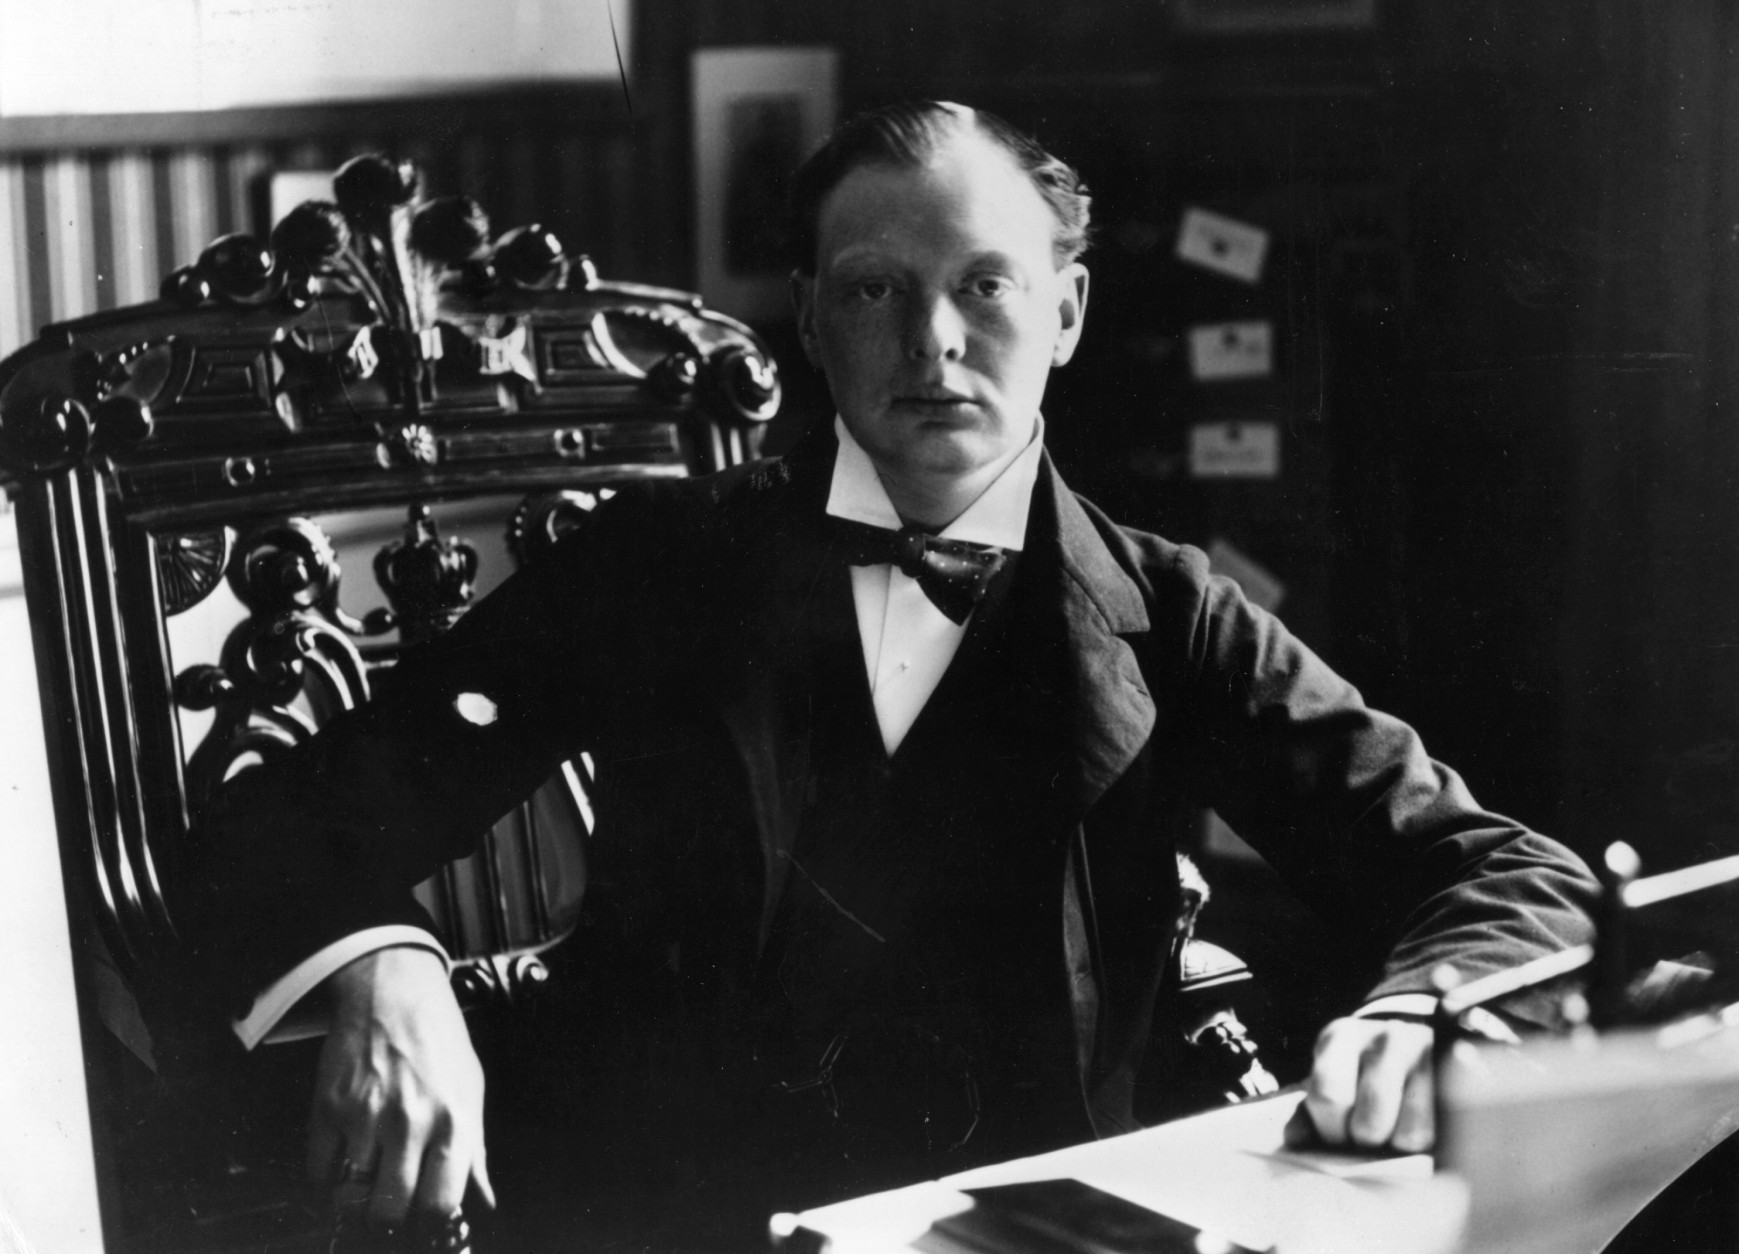 Winston Churchill (1874 - 1965), when MP for Oldham, seated at his desk.   (Photo by Rischgitz/Getty Images)